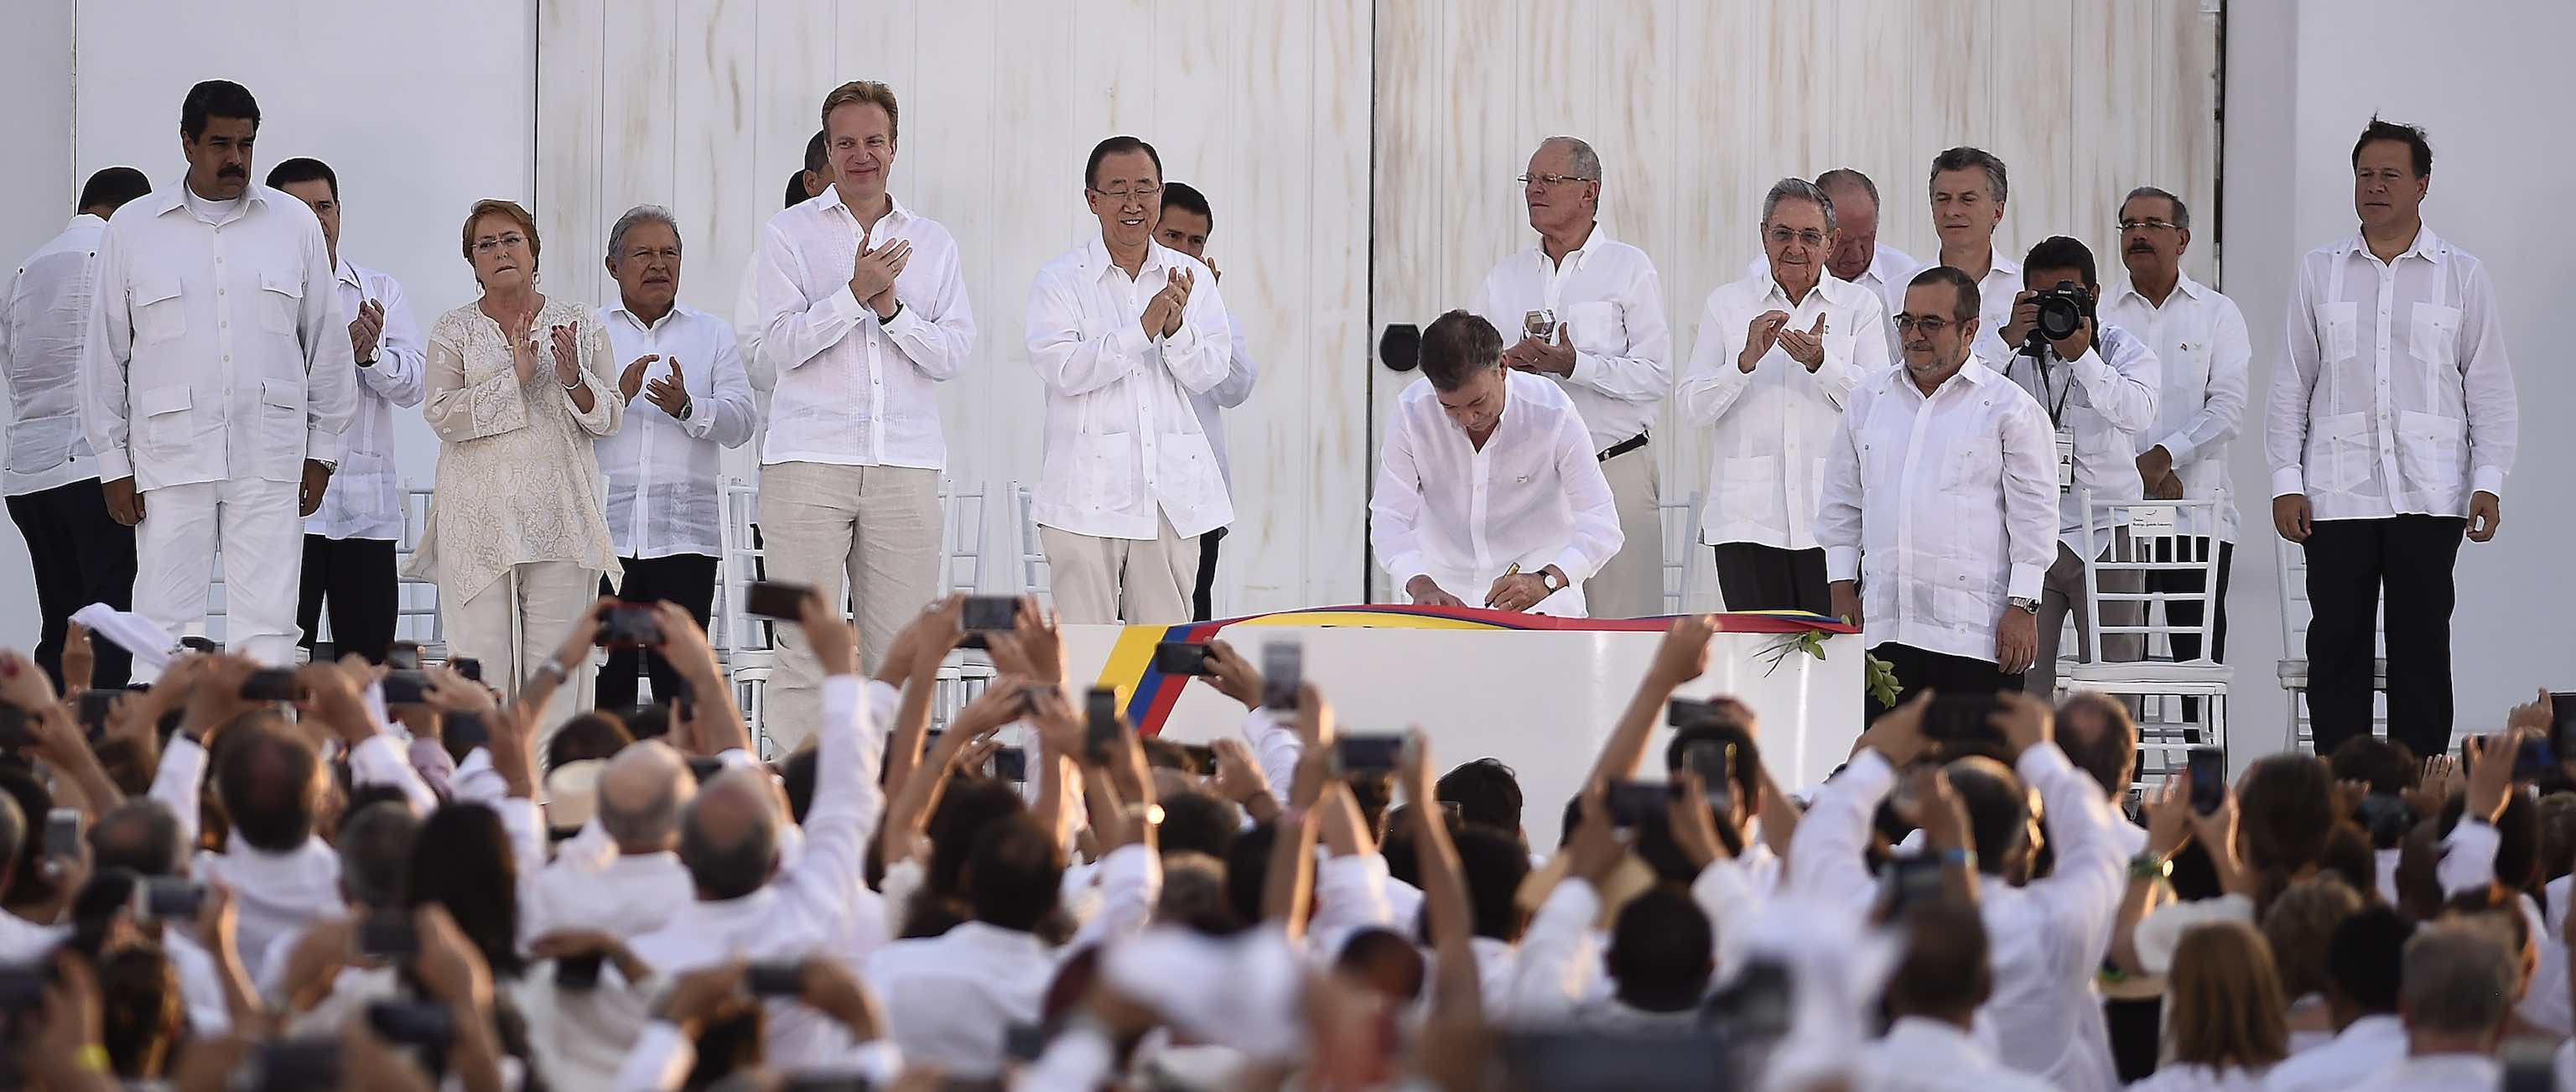 Colombia: Referendum Result Presents Opportunity for Dialogue